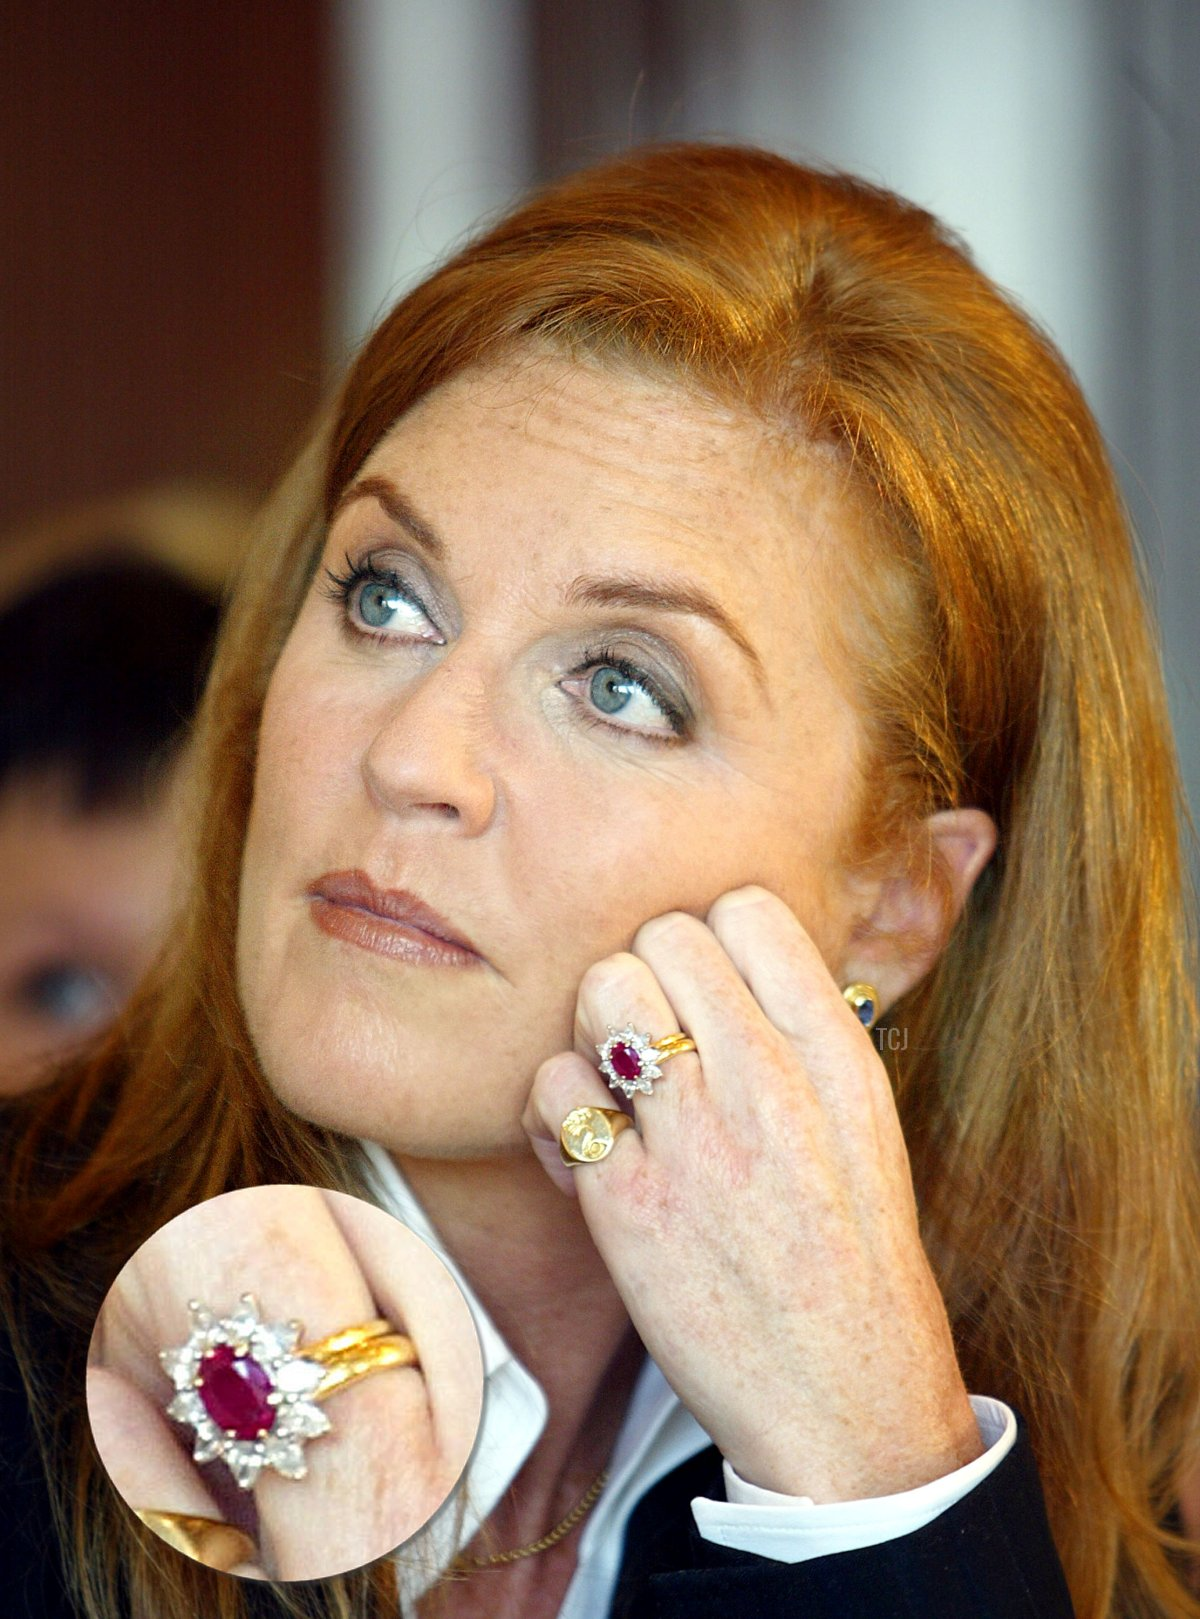 The Duchess of York Sarah Ferguson attends a press conference announcing the launch of a public service campaign to alert parents about the warning signs of Primary Immunodeficiency (PI) April 29, 2002 in New York City